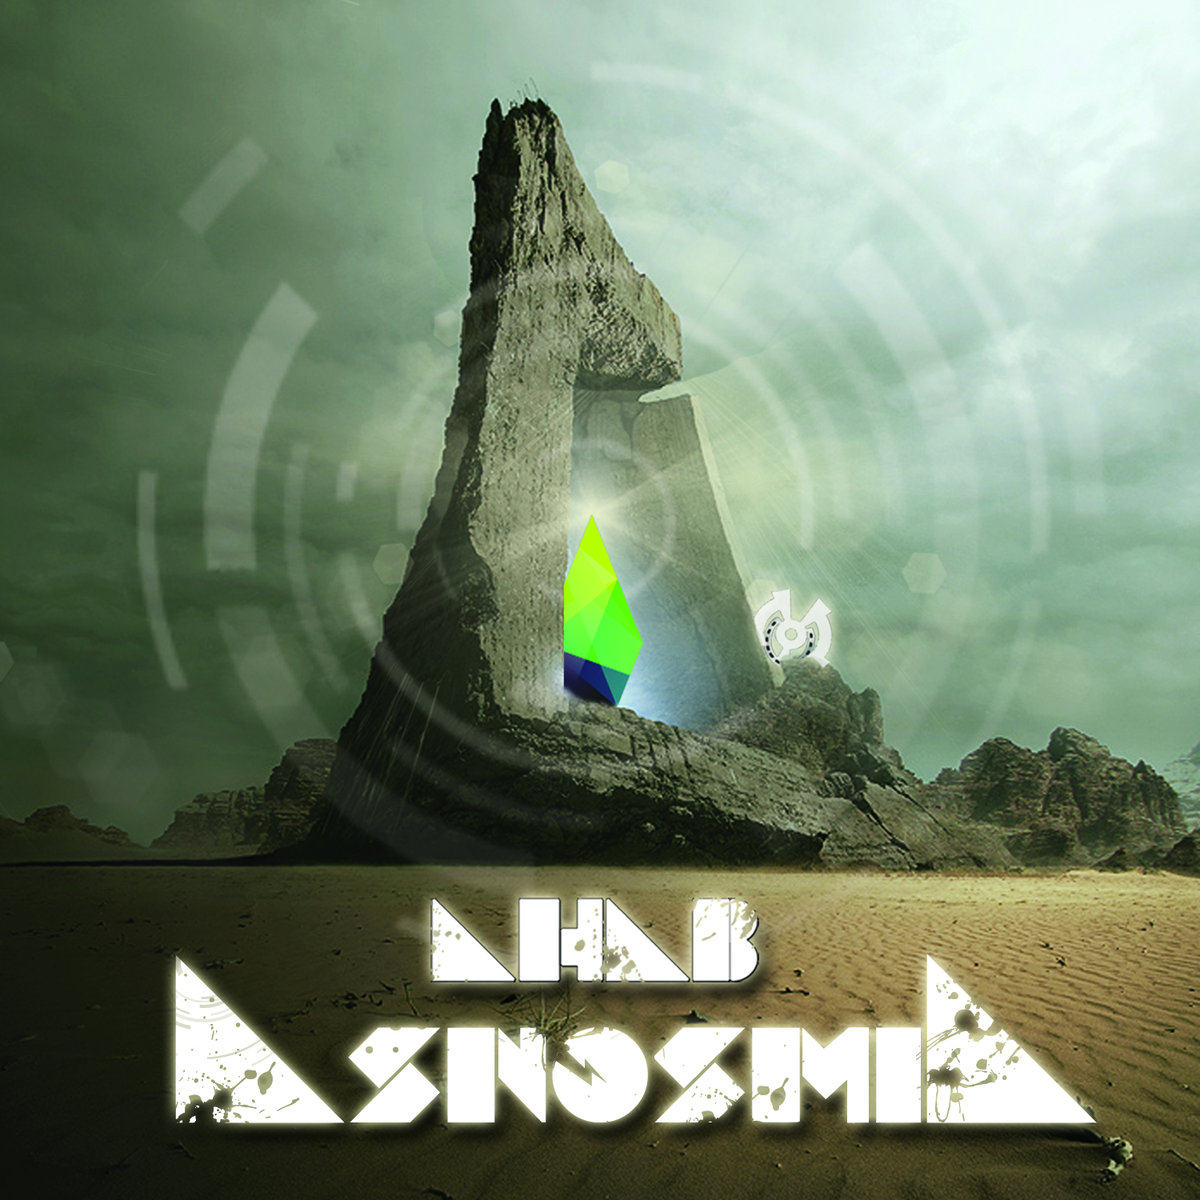 AHAB - Asnosmia (Free Crush Remix) @ 'Asnosmia' album (electronic, dubstep)